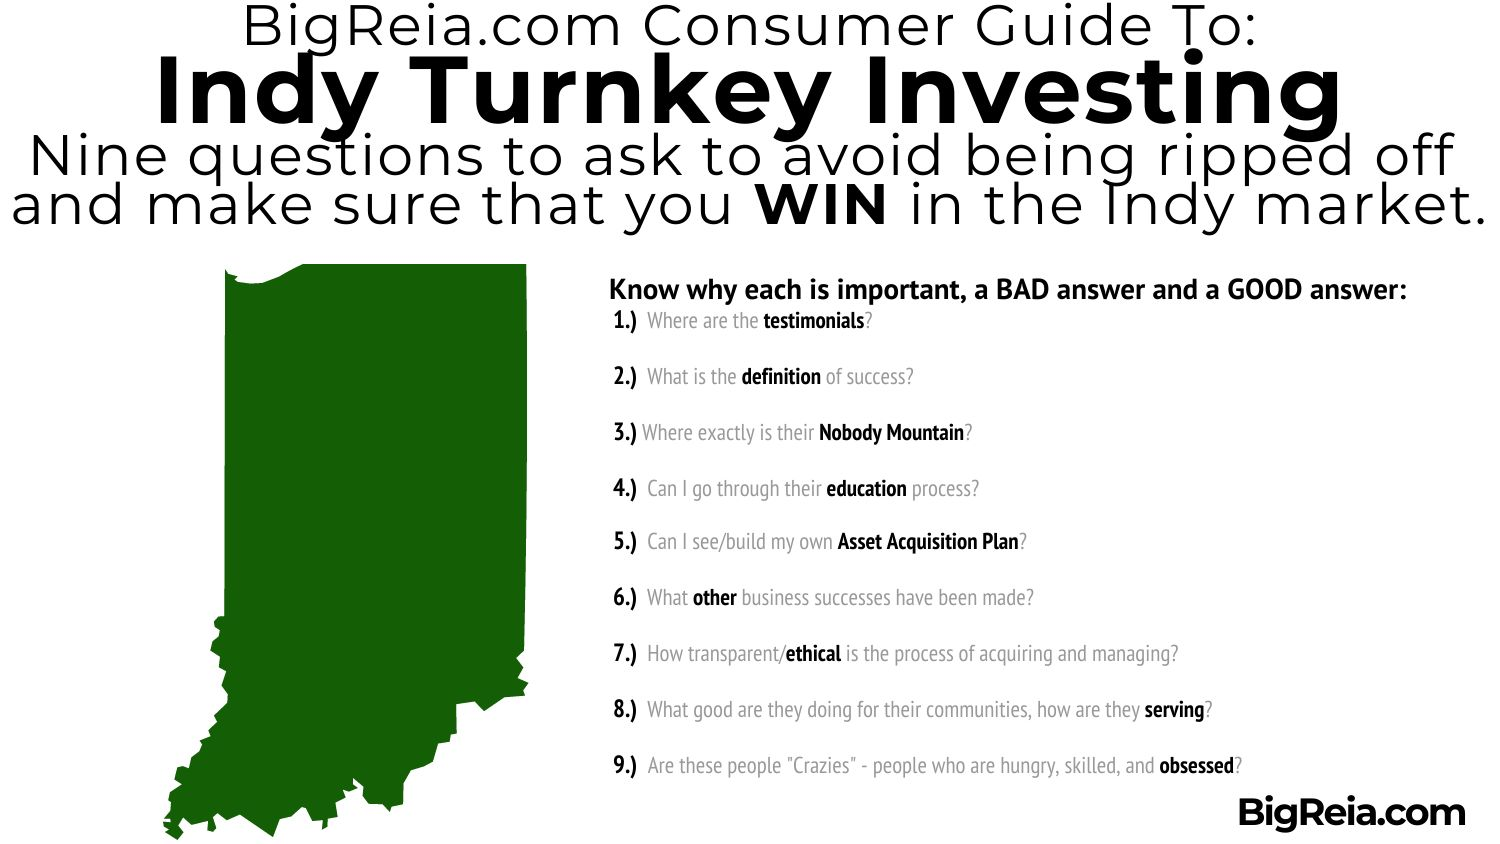 Review of the nine questions Indy turnkey investors can used to avoid being scammed